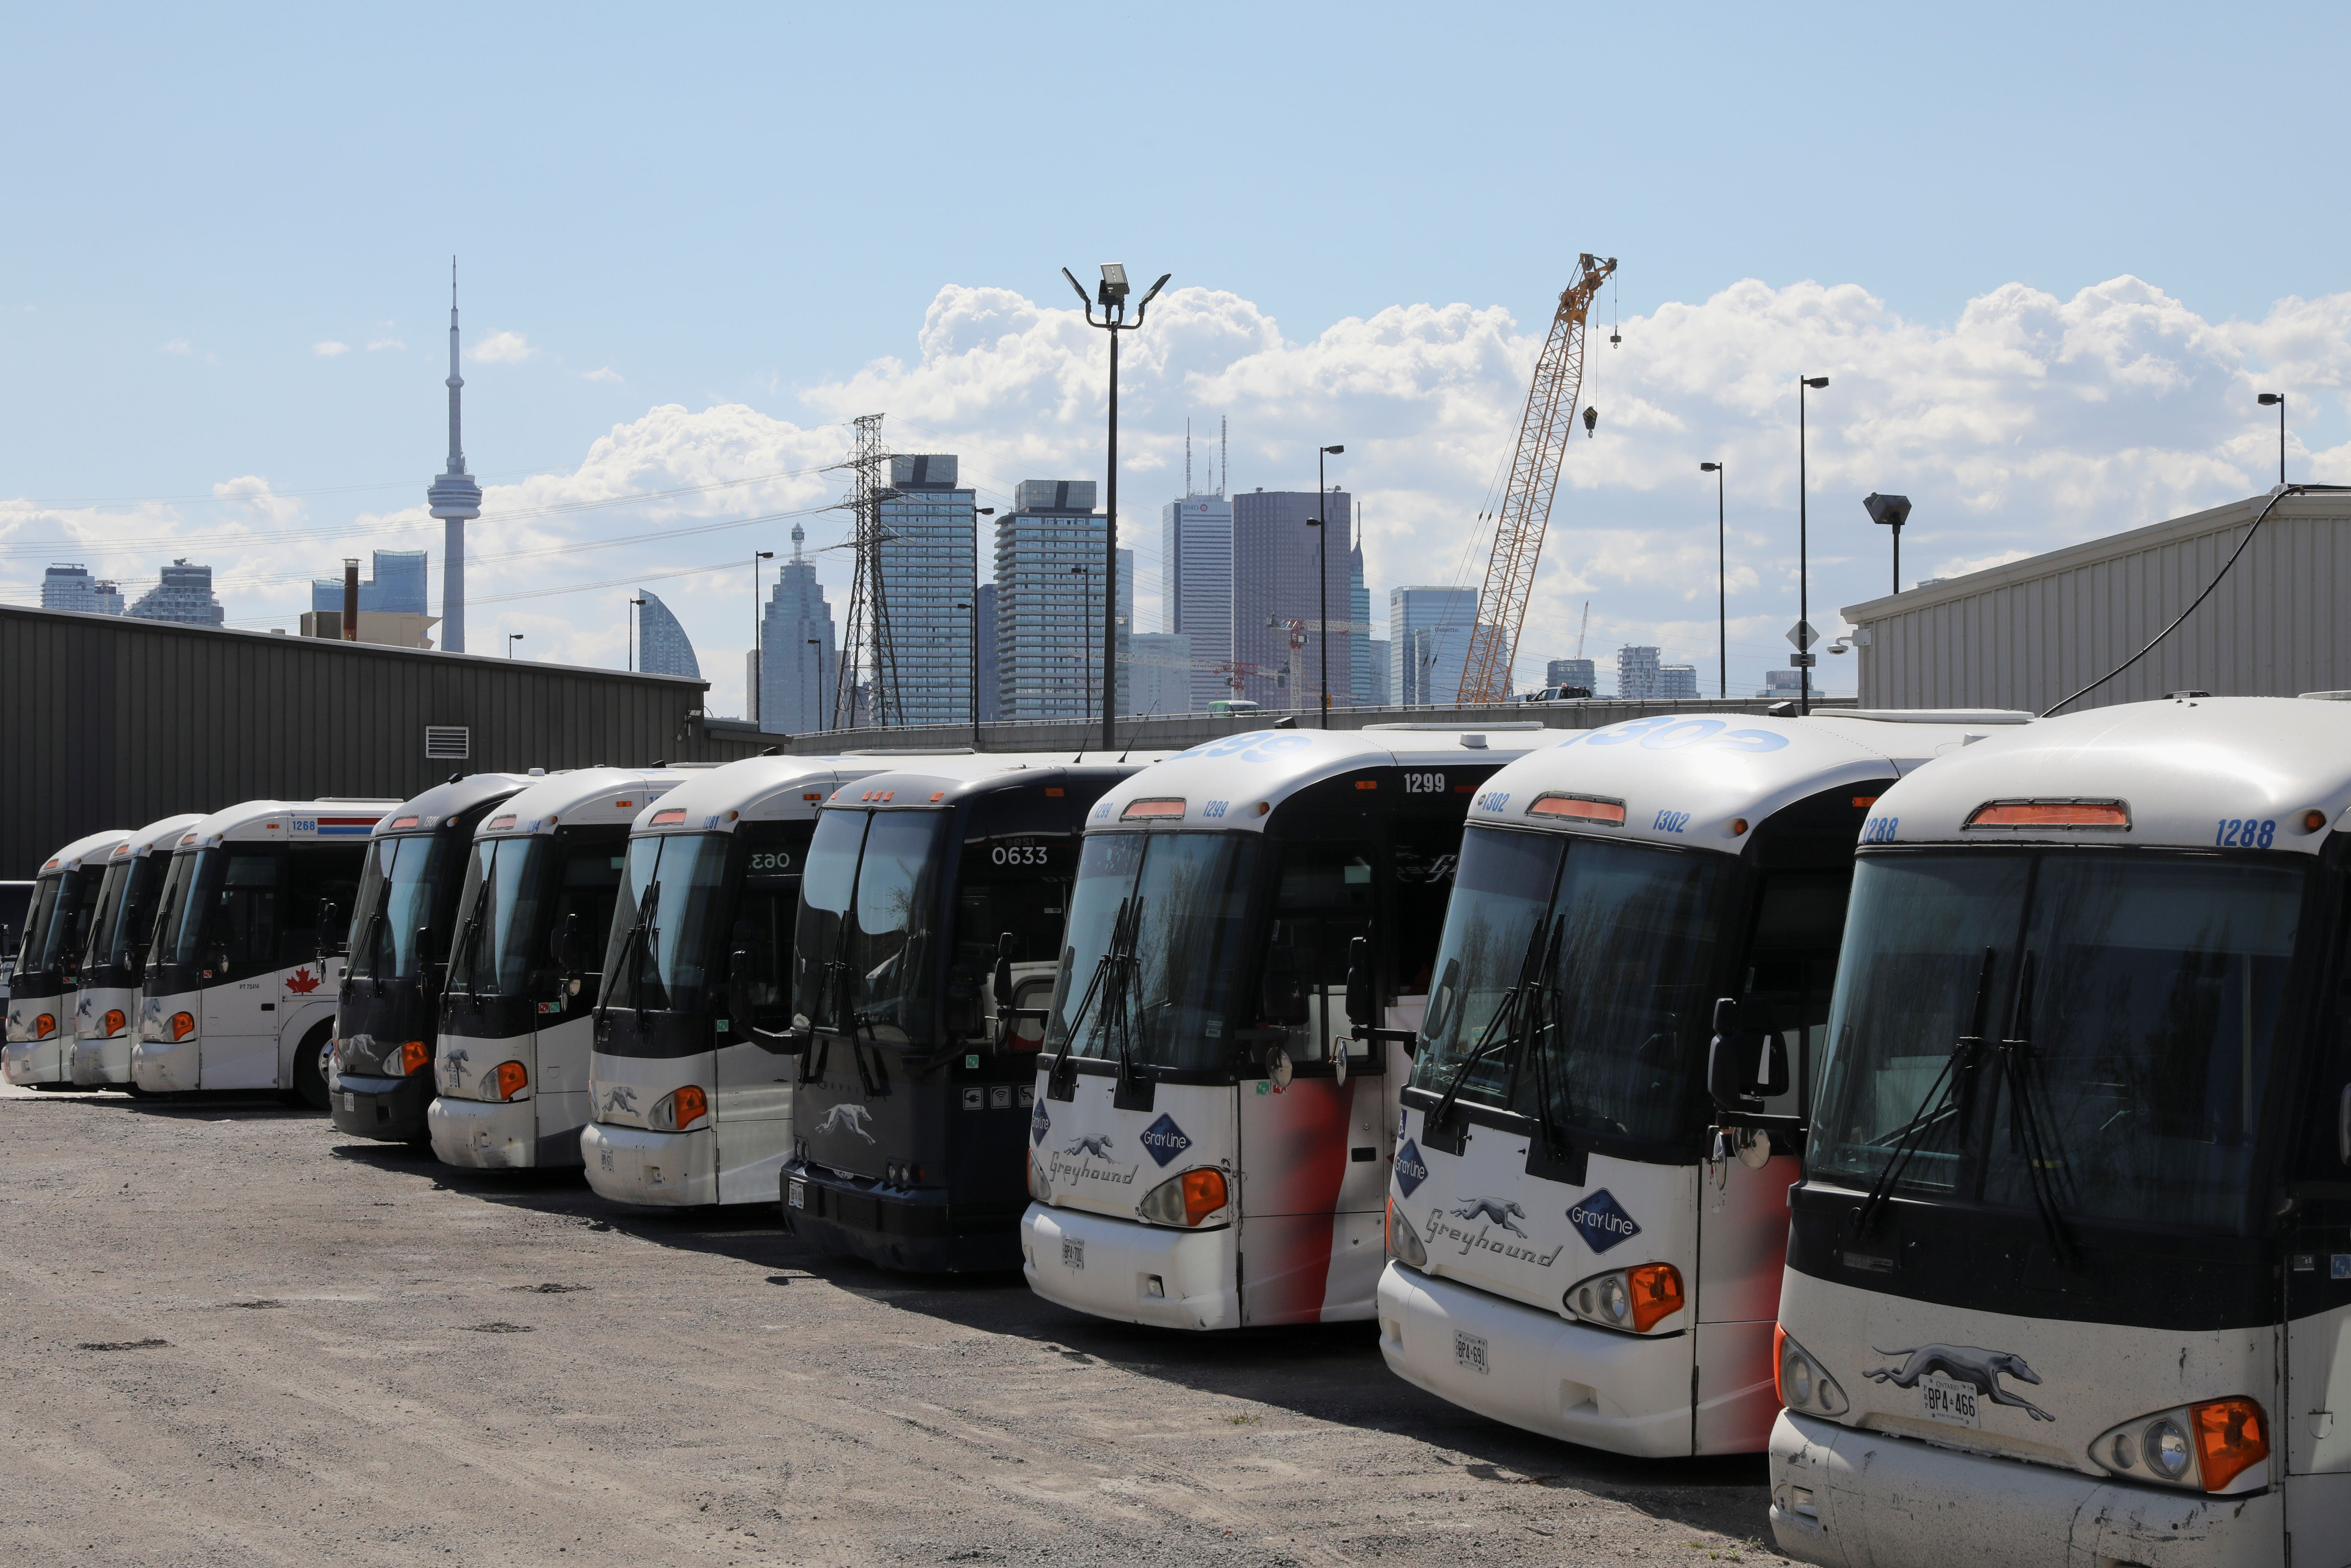 Idle Greyhound buses are parked at a depot after the transportation company announced that it had permanently closed its service in Canada, in Toronto, Ontario, Canada May 13, 2021. REUTERS/Chris Helgren